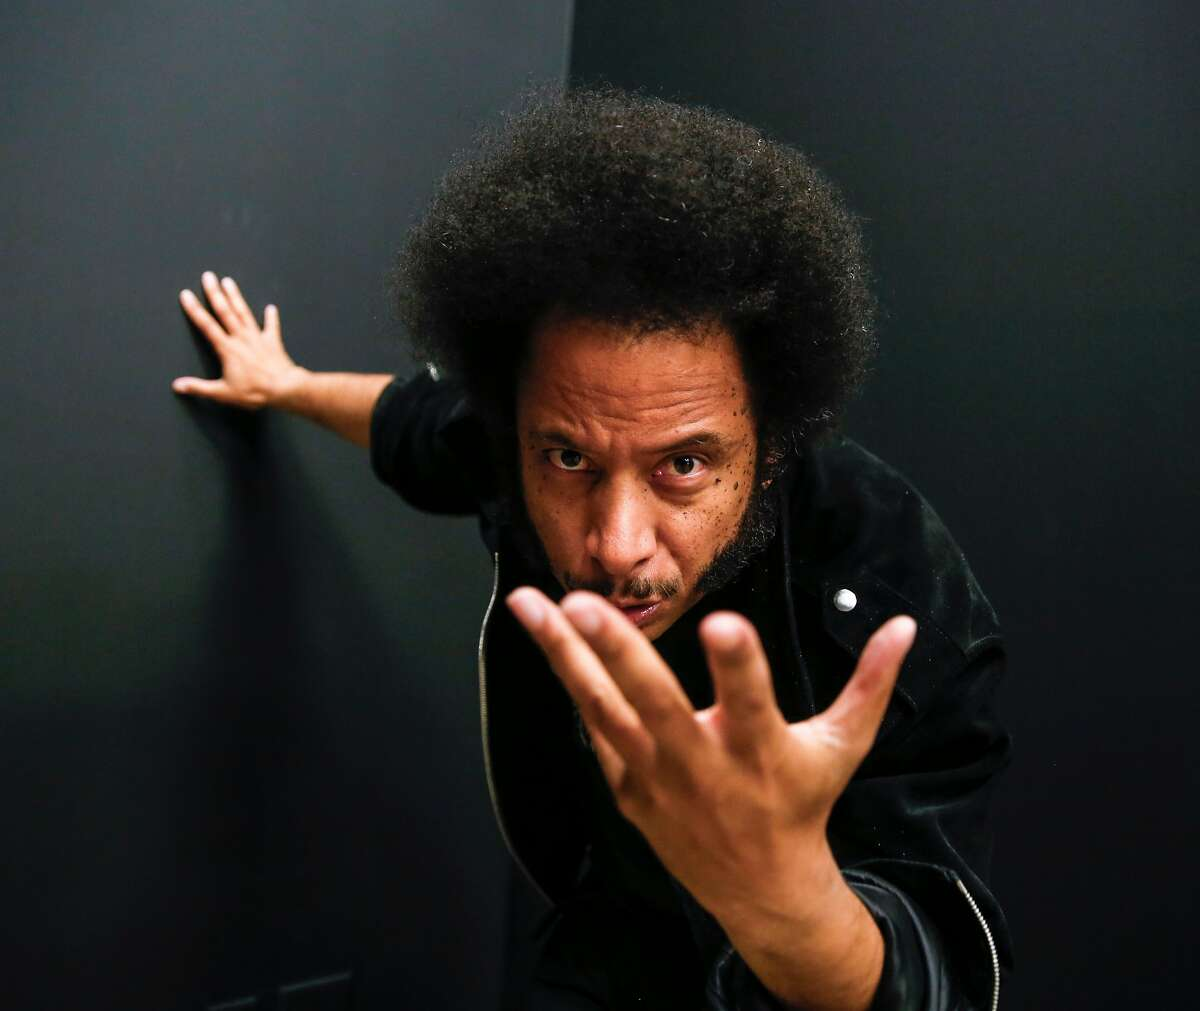 """Boots Riley, director of the film, """"Sorry to Bother You,"""" is seen on Tuesday, June 26, 2018 in San Francisco, Calif."""